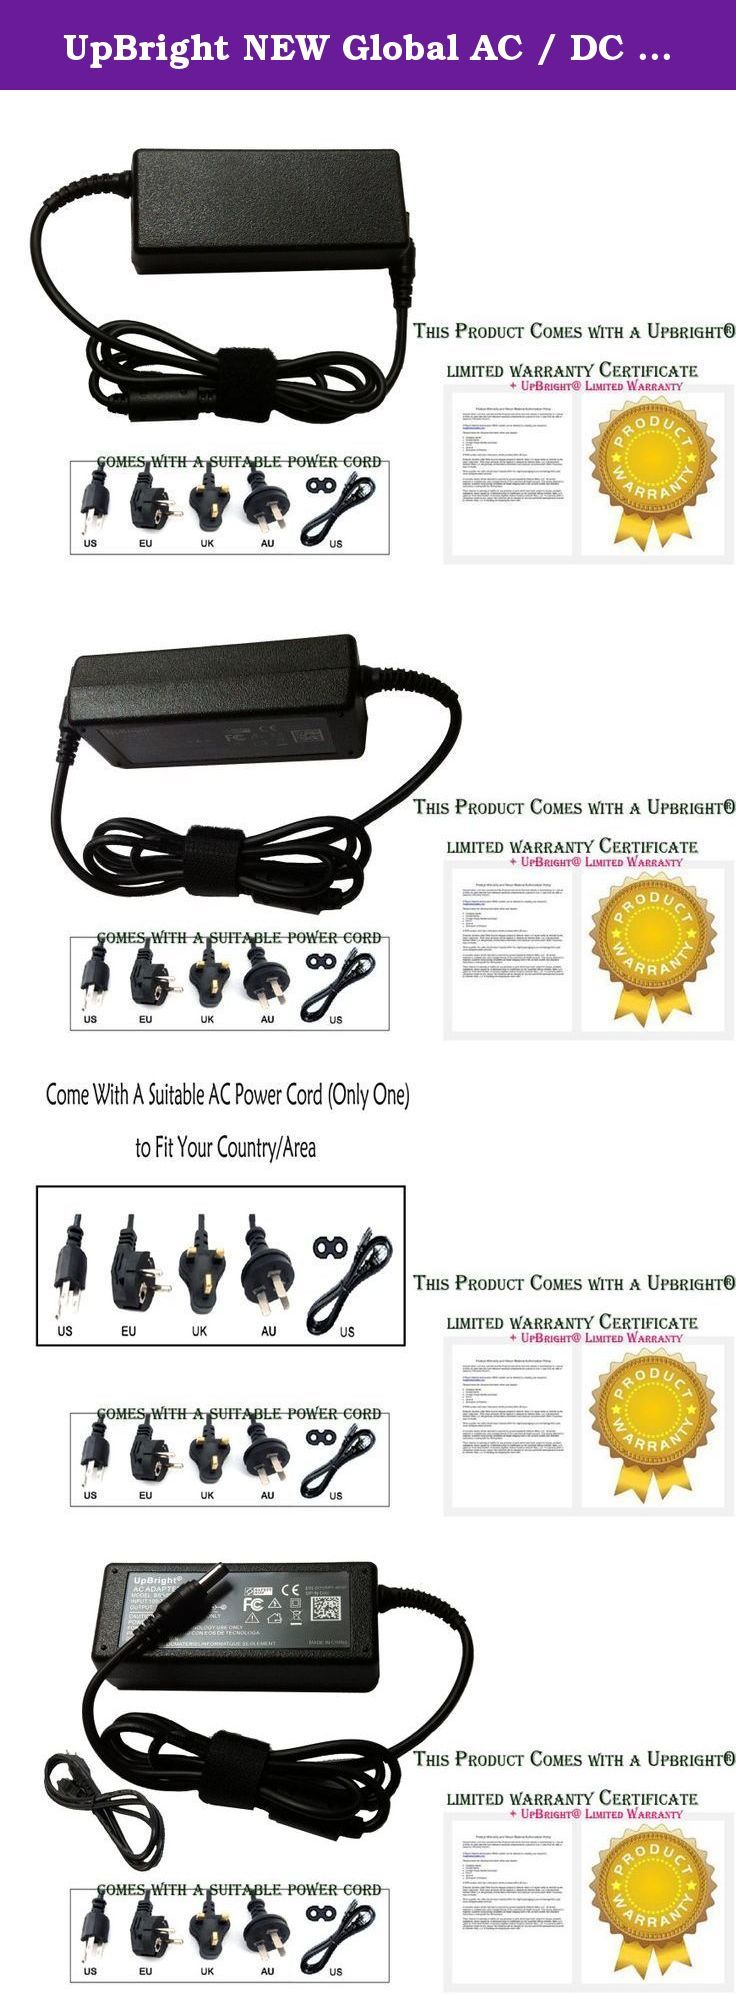 UpBright NEW Global AC / DC Adapter For Precor EFX 576i EFX576i Elliptical Trainer Power Supply Cord Cable PS Charger Mains PSU (w/ Barrel Round Plug Tip). UpBright® NEW Global AC / DC Adapter For Precor EFX 576i EFX576i Elliptical Trainer Power Supply Cord Cable PS Charger Mains PSU (w/ Barrel Round Plug Tip) CECCCROHS 100-240.